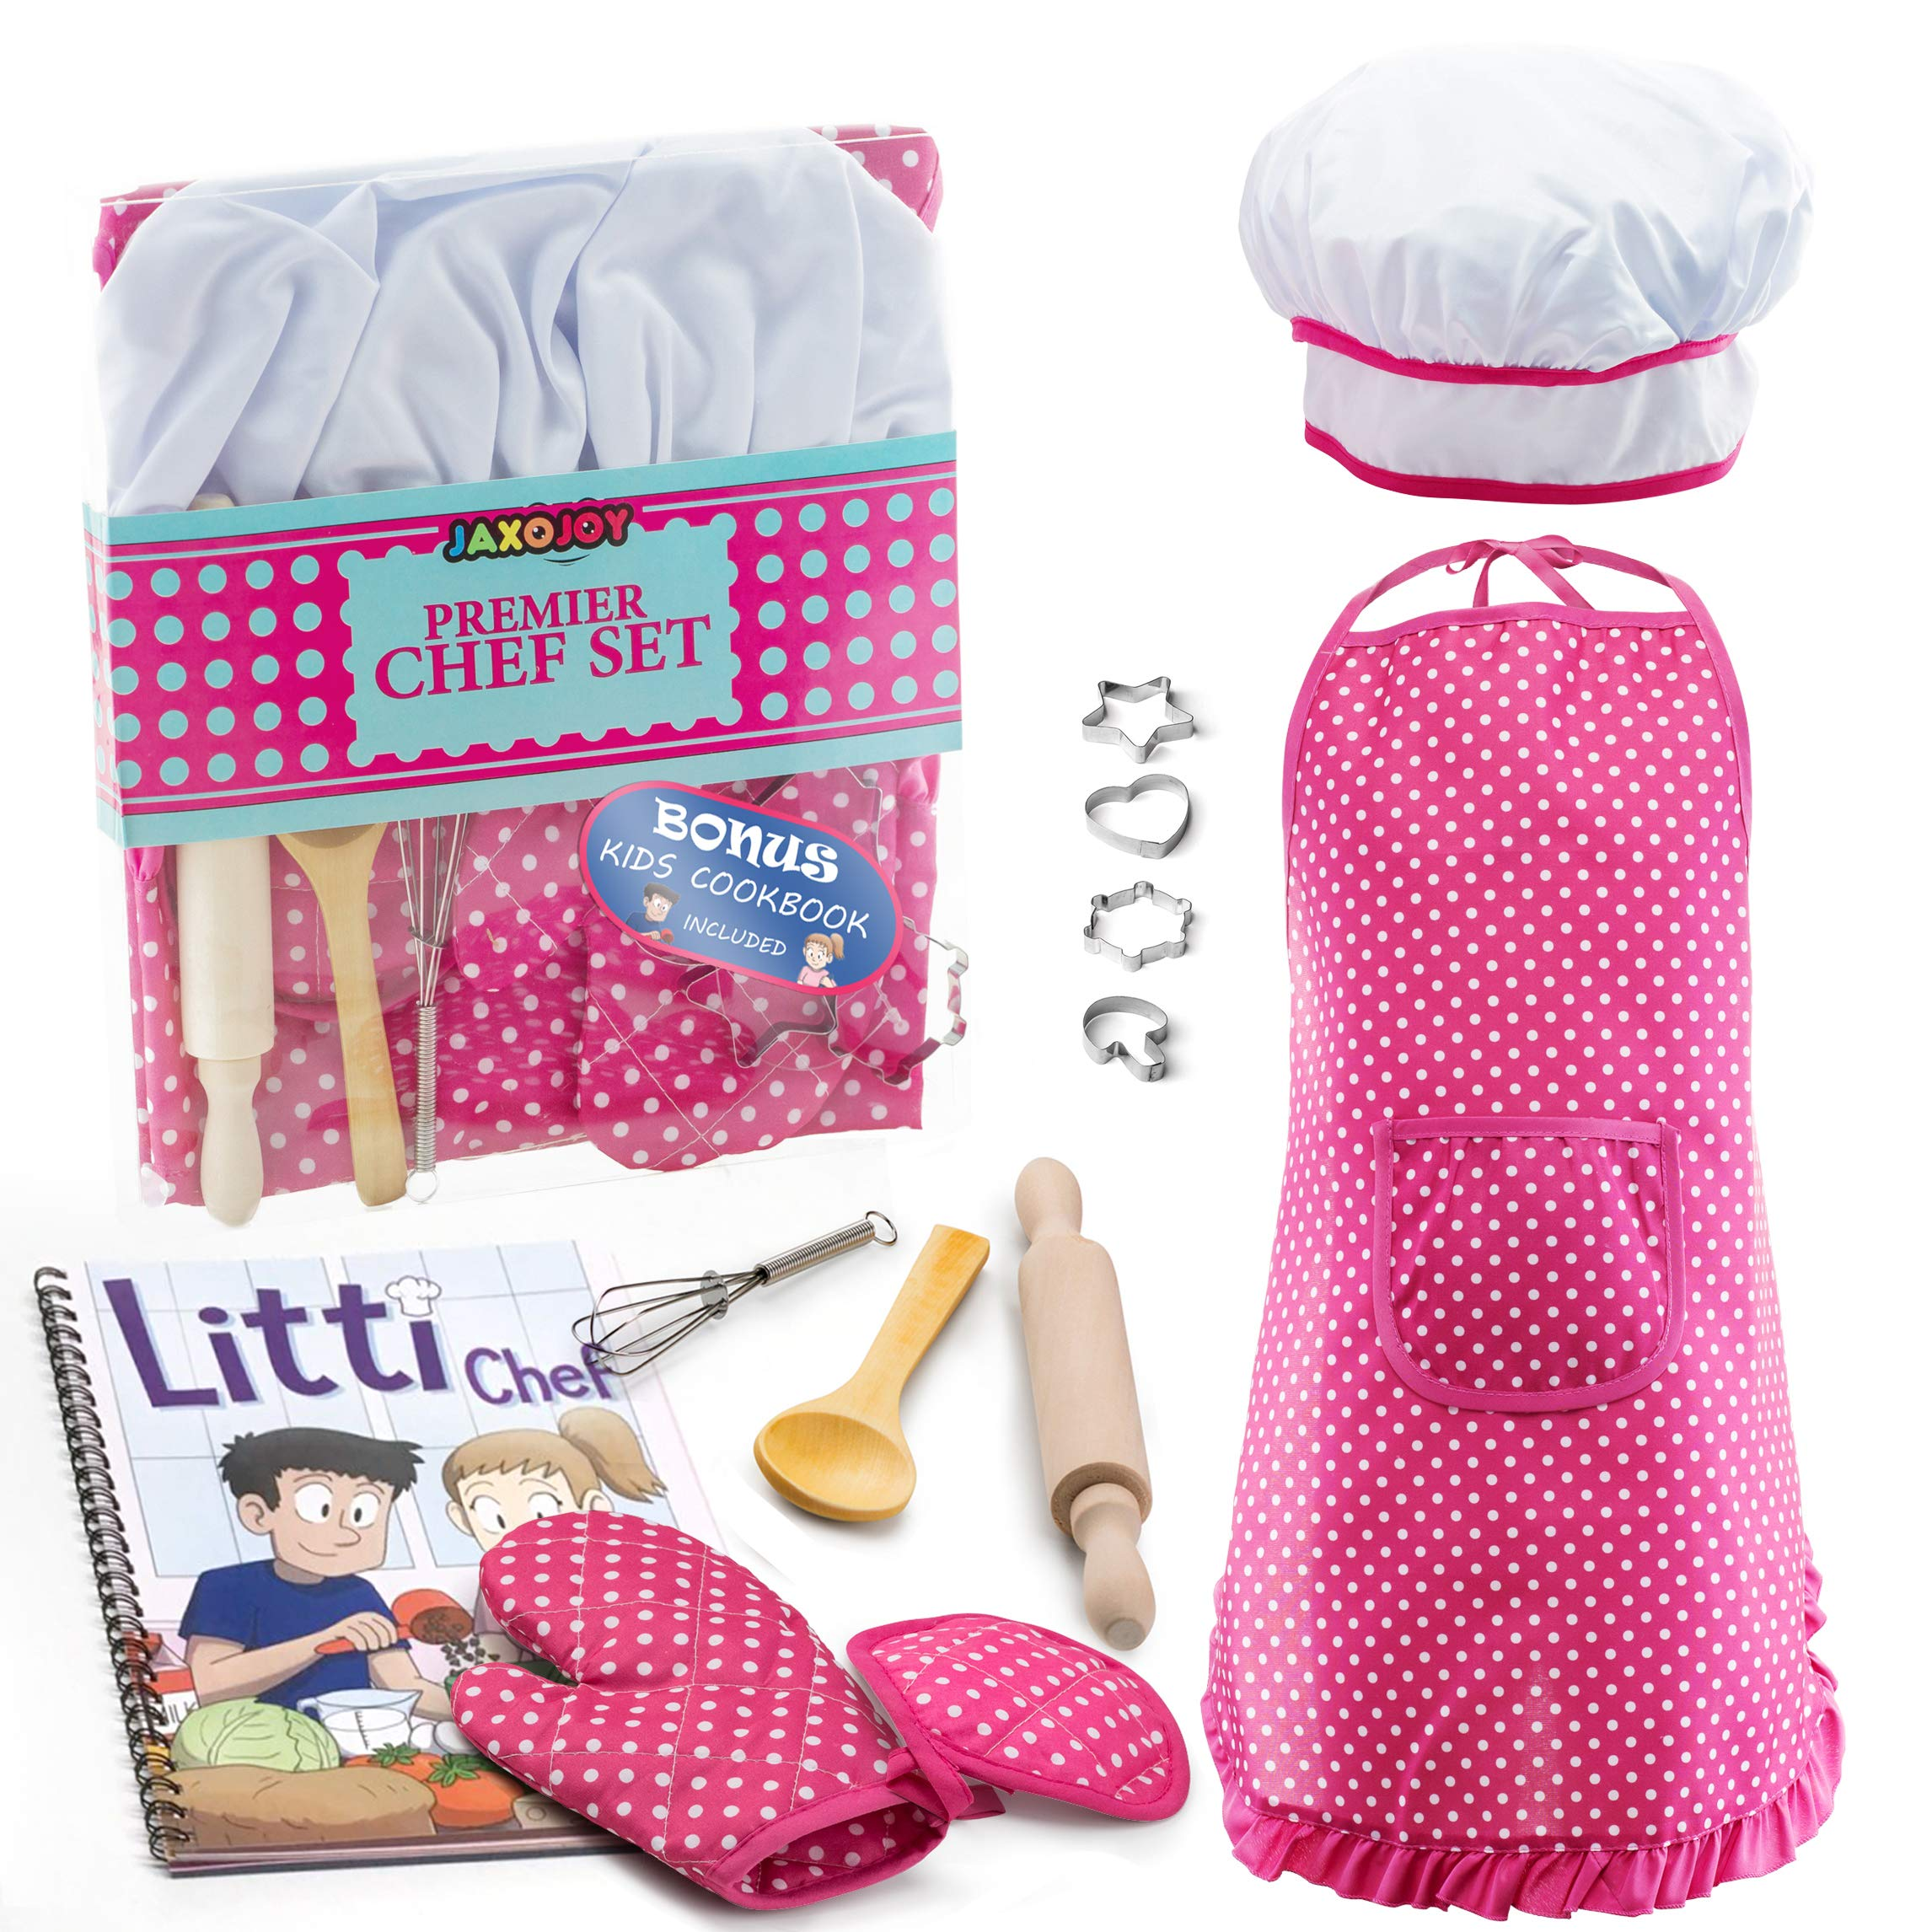 JaxoJoy Complete Kids Cooking and Baking Set - 11 Pcs Includes Apron for Little Girls, Chef Hat, Mitt & Utensil for Toddler Dress Up Chef Costume Career Role Play for 3 Year Old Girls and Up. by JaxoJoy